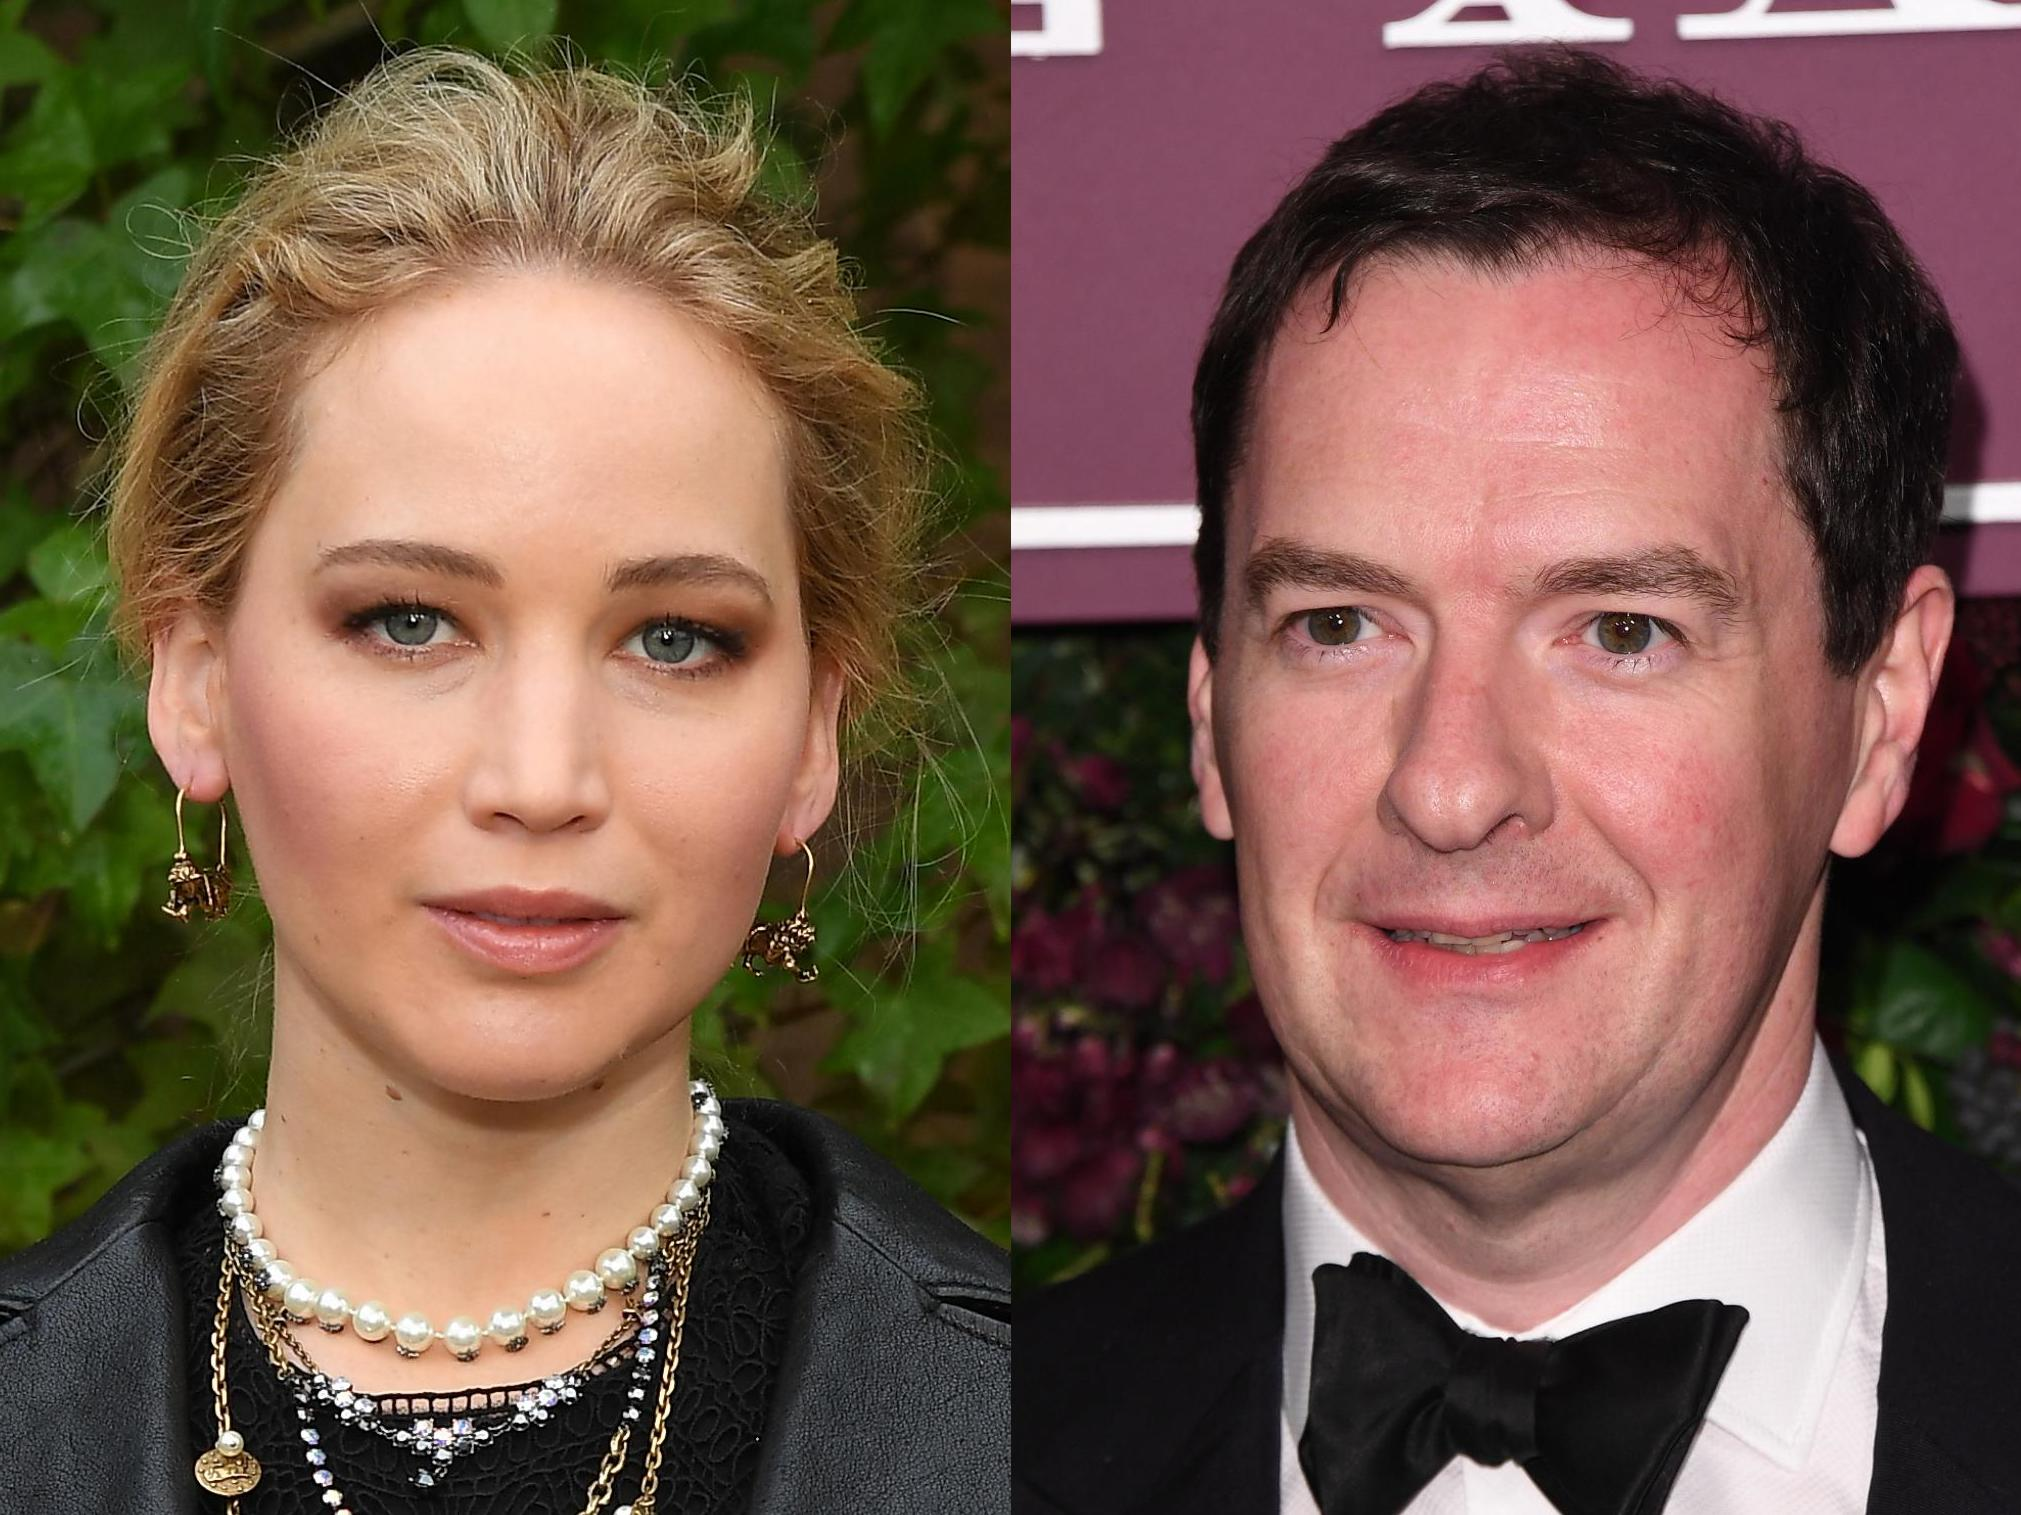 George Osborne claims he danced with 'normal-sized' Jennifer Lawrence at Oscars after-party